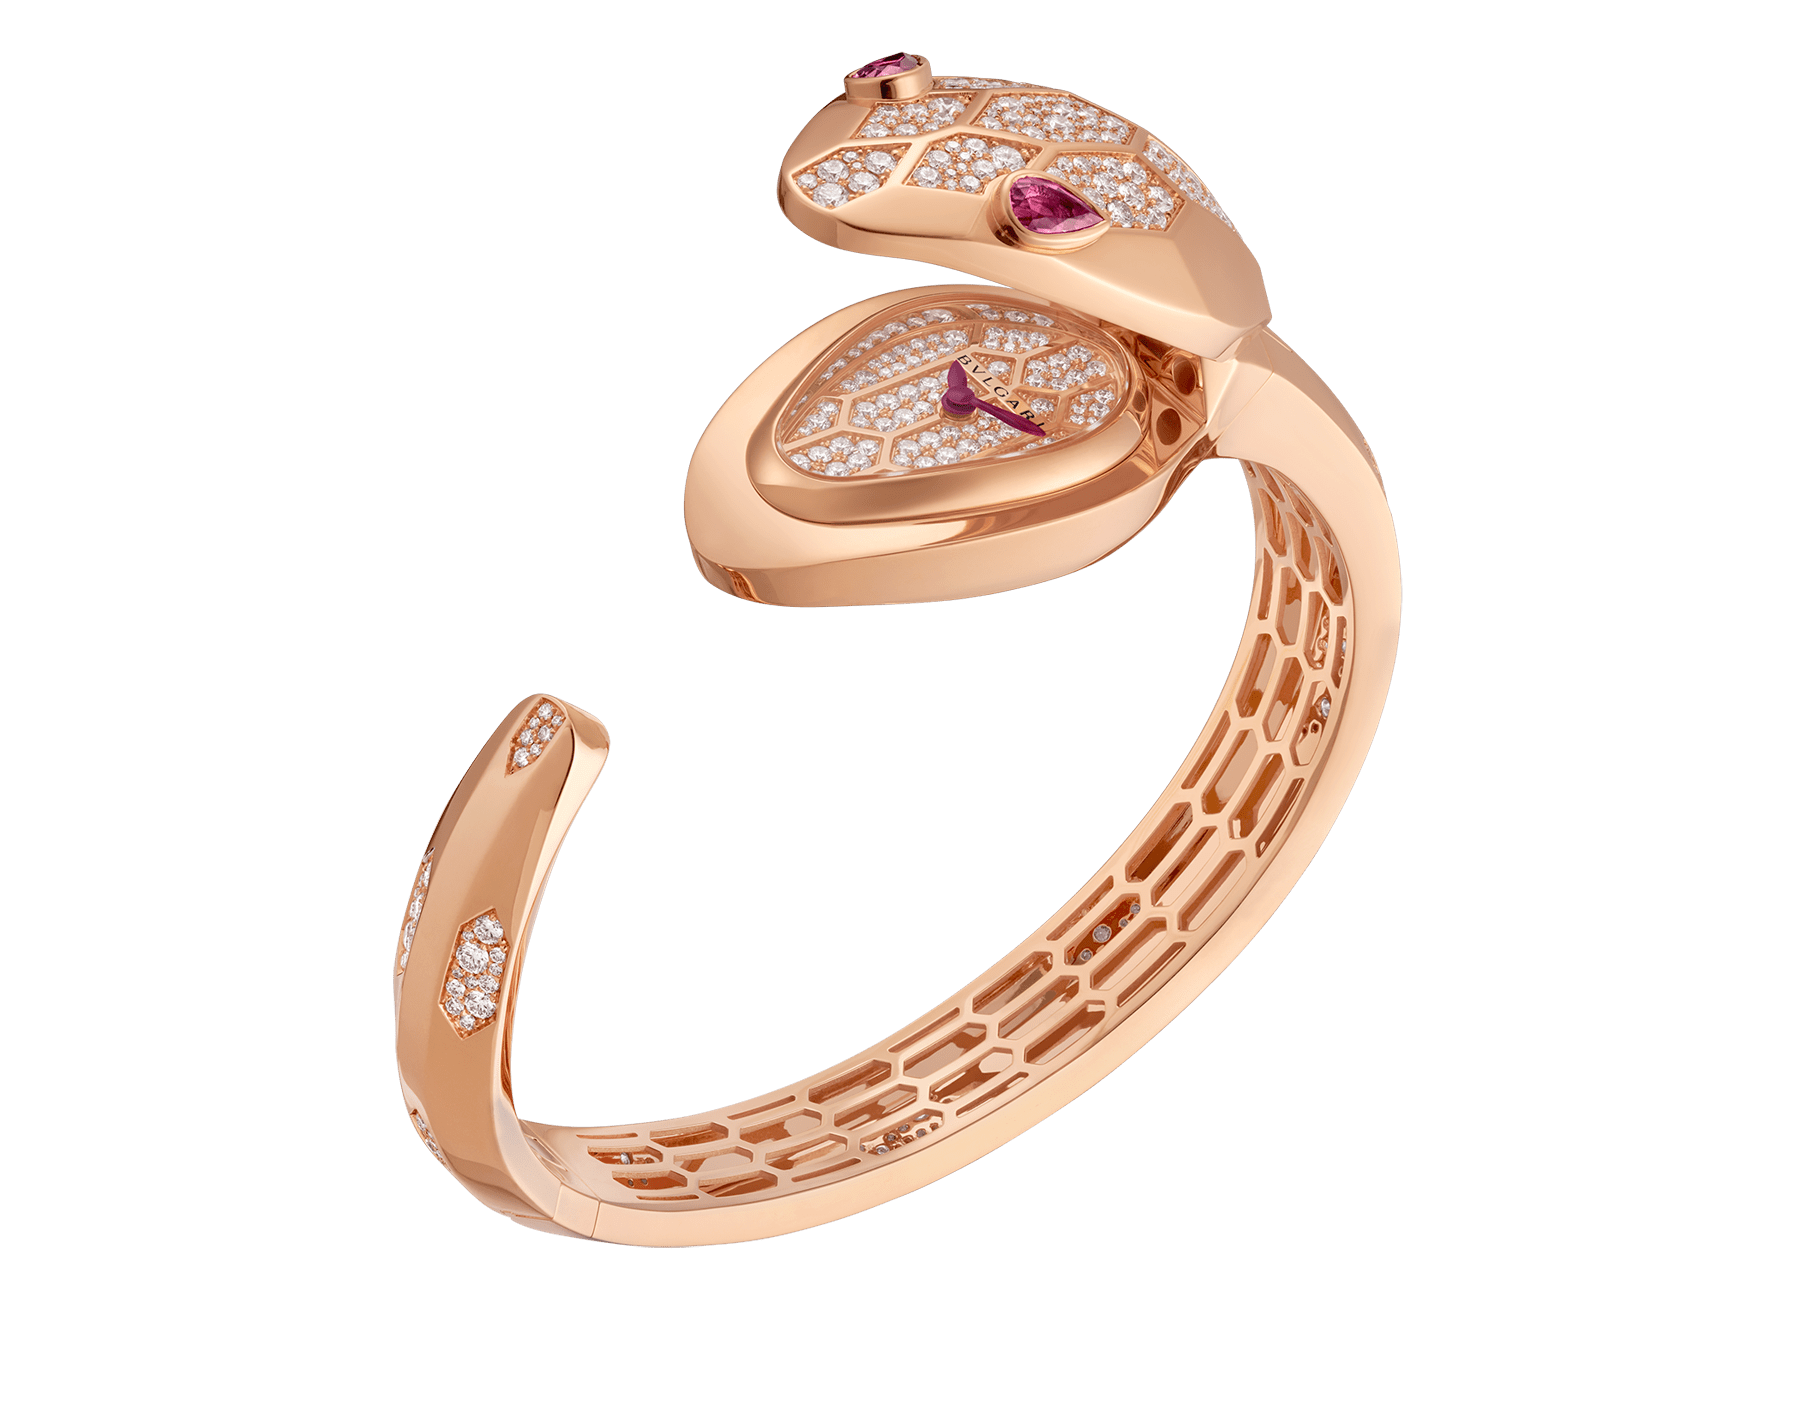 Serpenti Misteriosi Secret Watch in 18 kt rose gold case and bangle bracelet both set with round brilliant-cut diamonds, 18 kt rose gold diamond pavé dial and pear-shaped rubellite eyes. SrpntMister-SecretWtc-rose-gold2 image 8